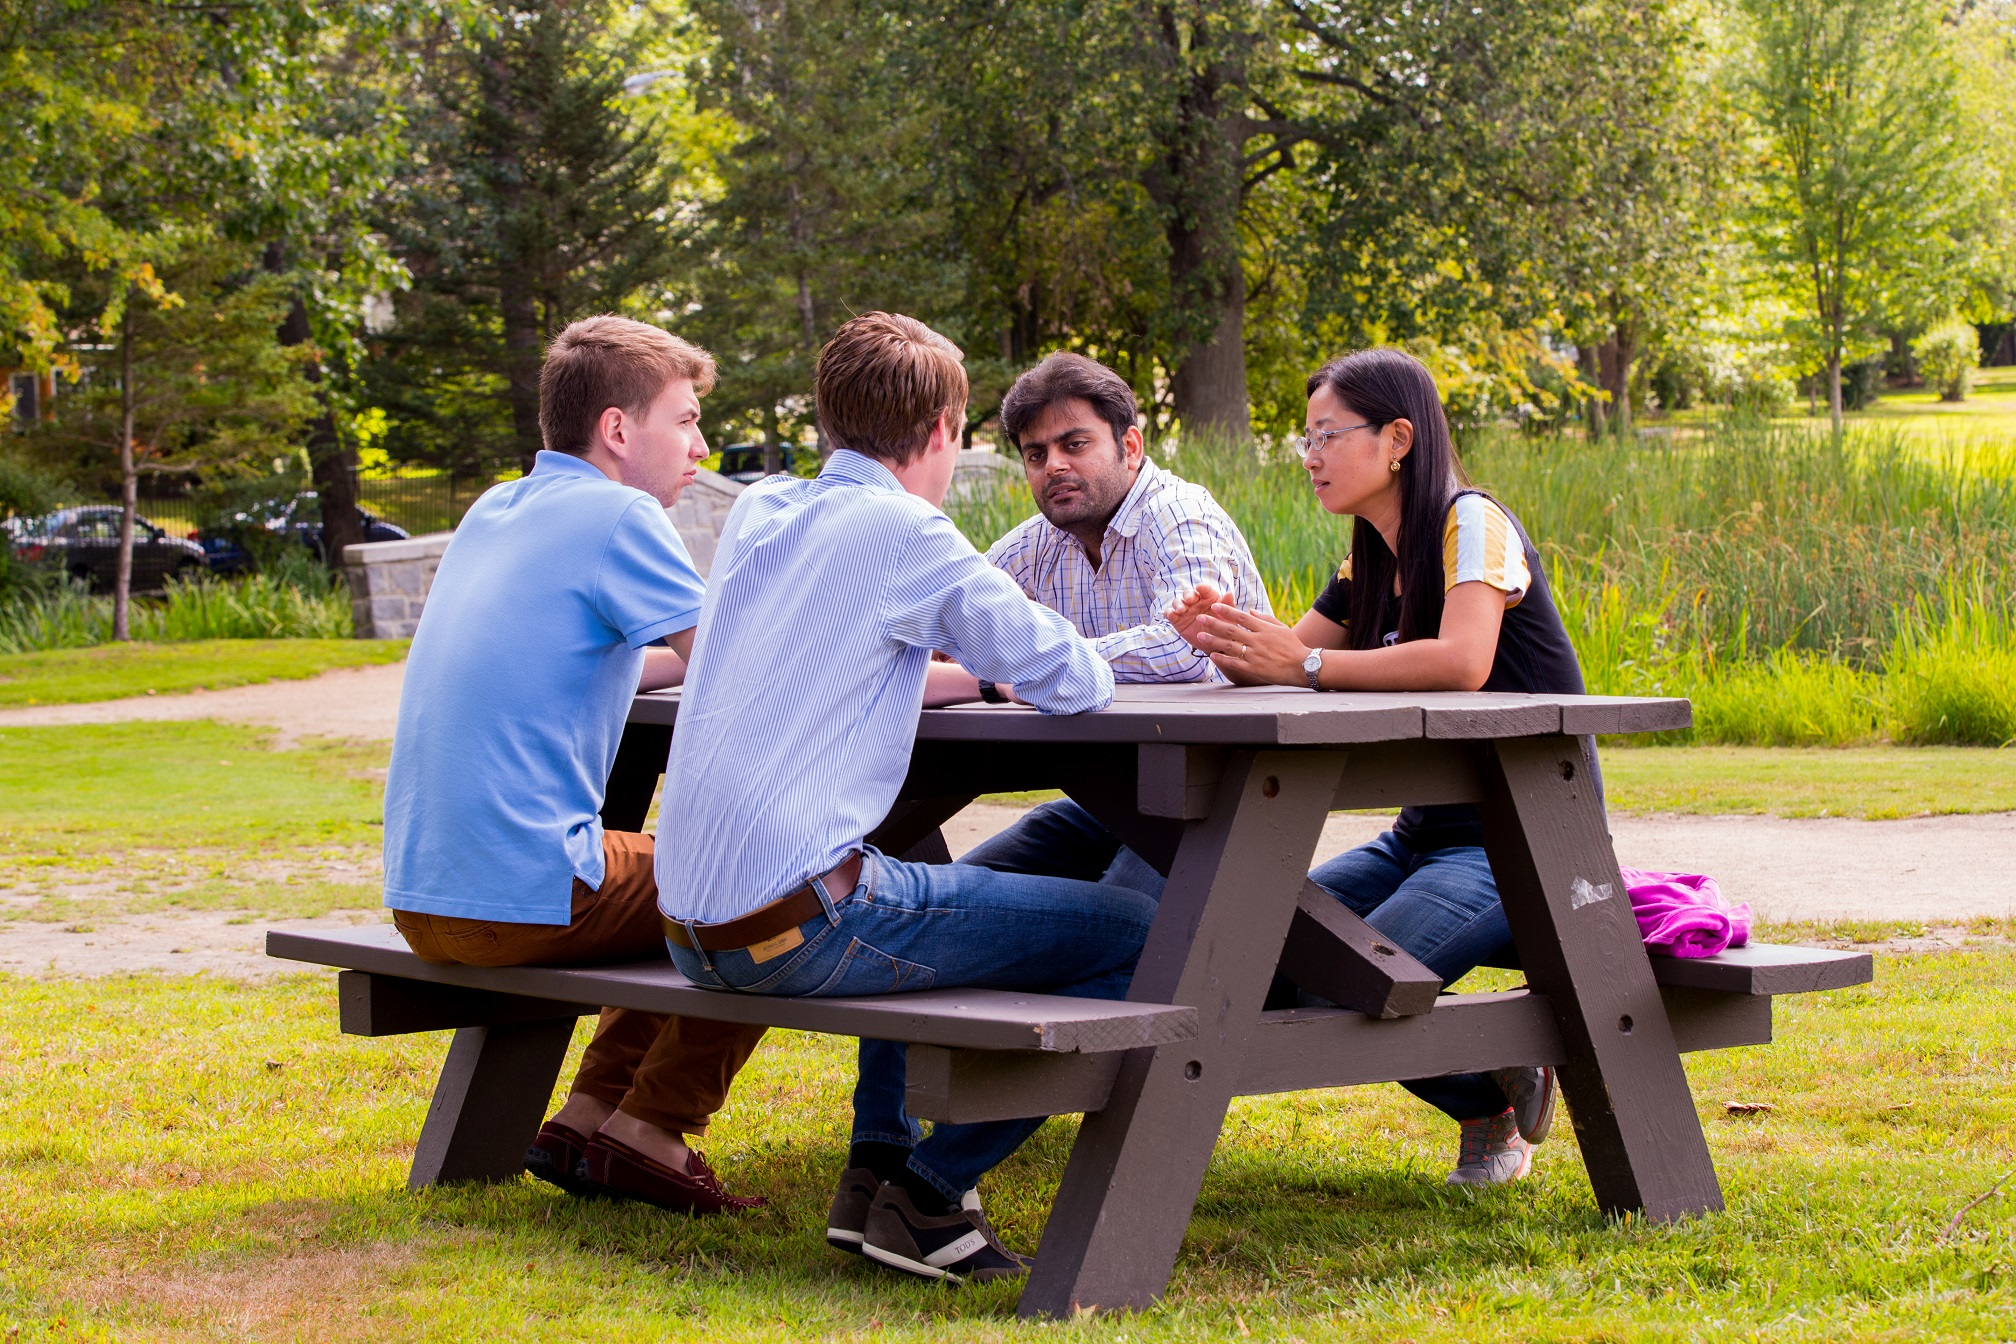 students at picnic table in park